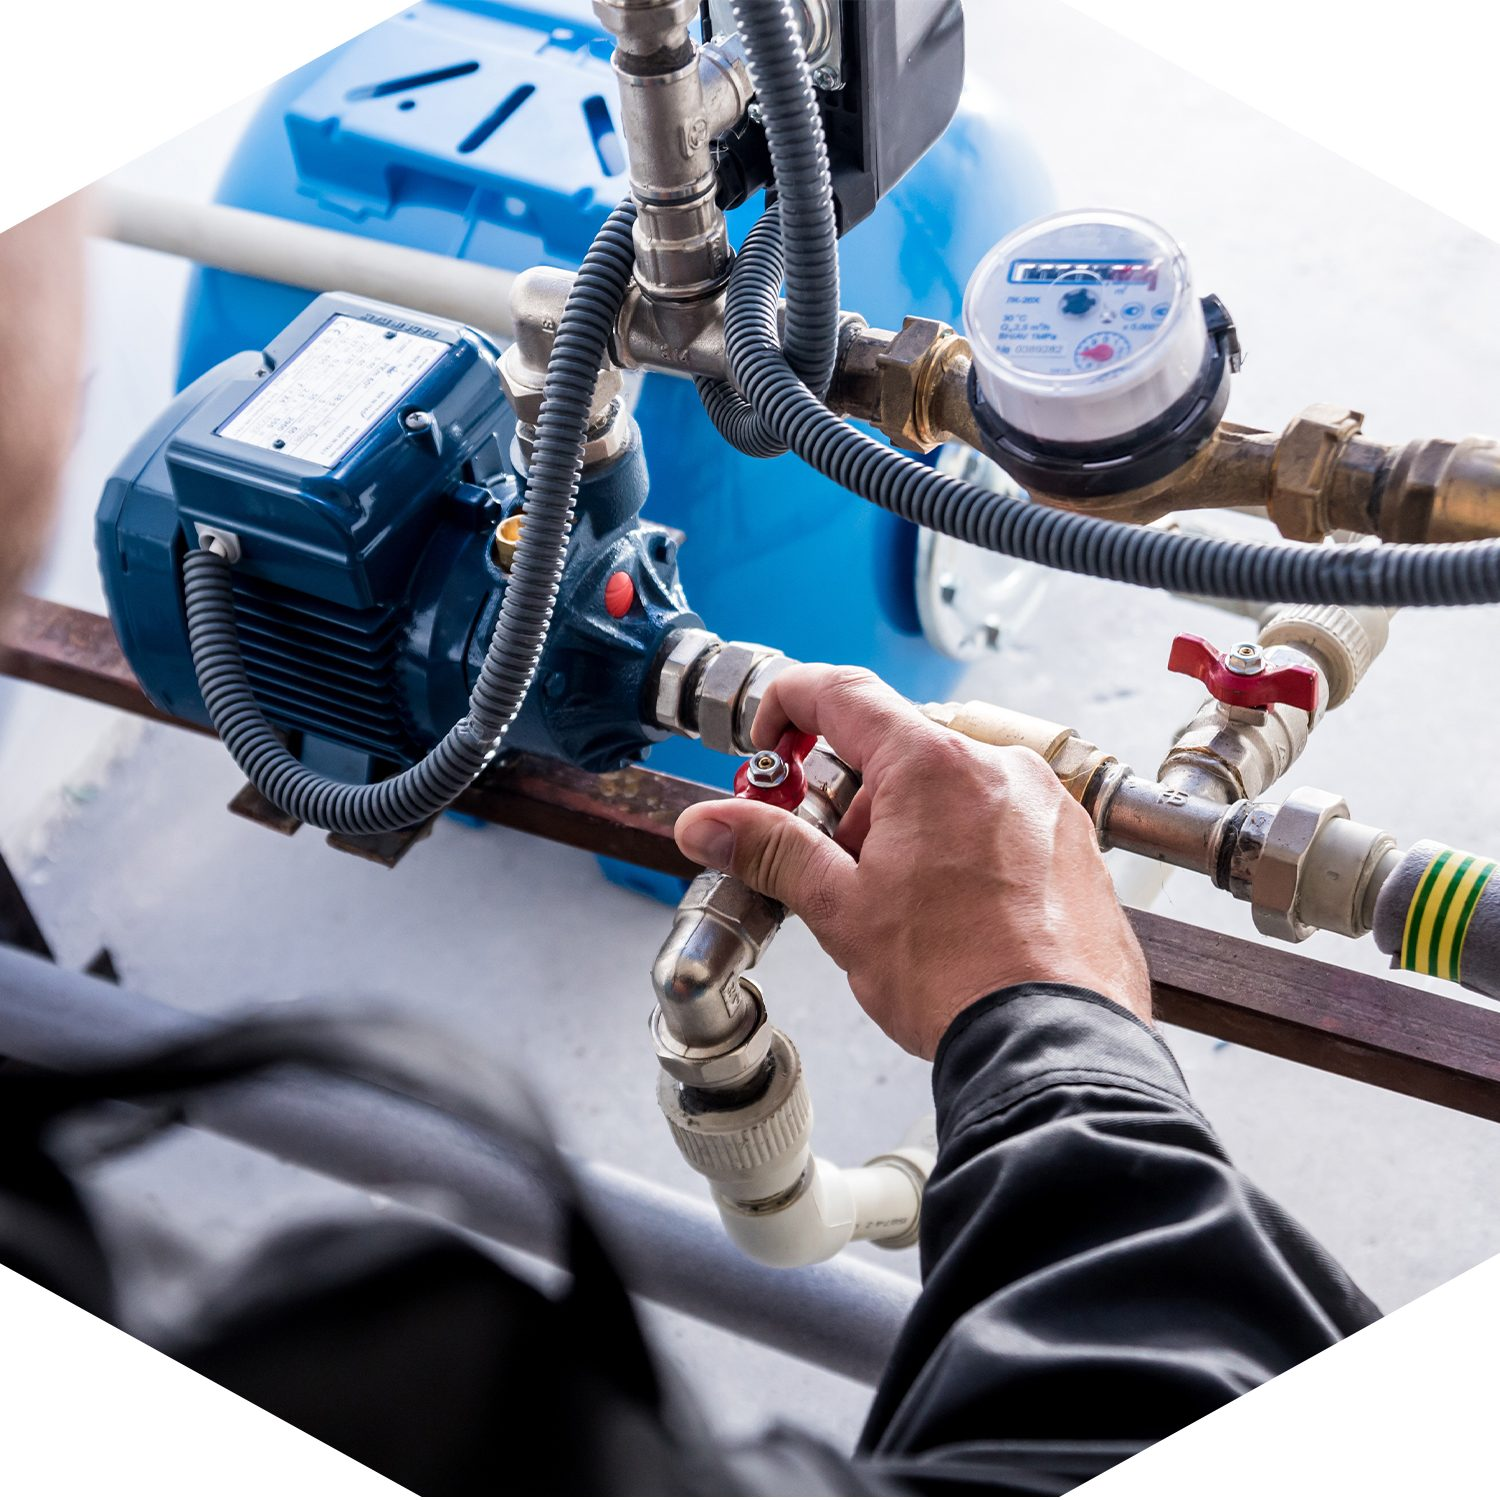 Accounting for Plumbing Company